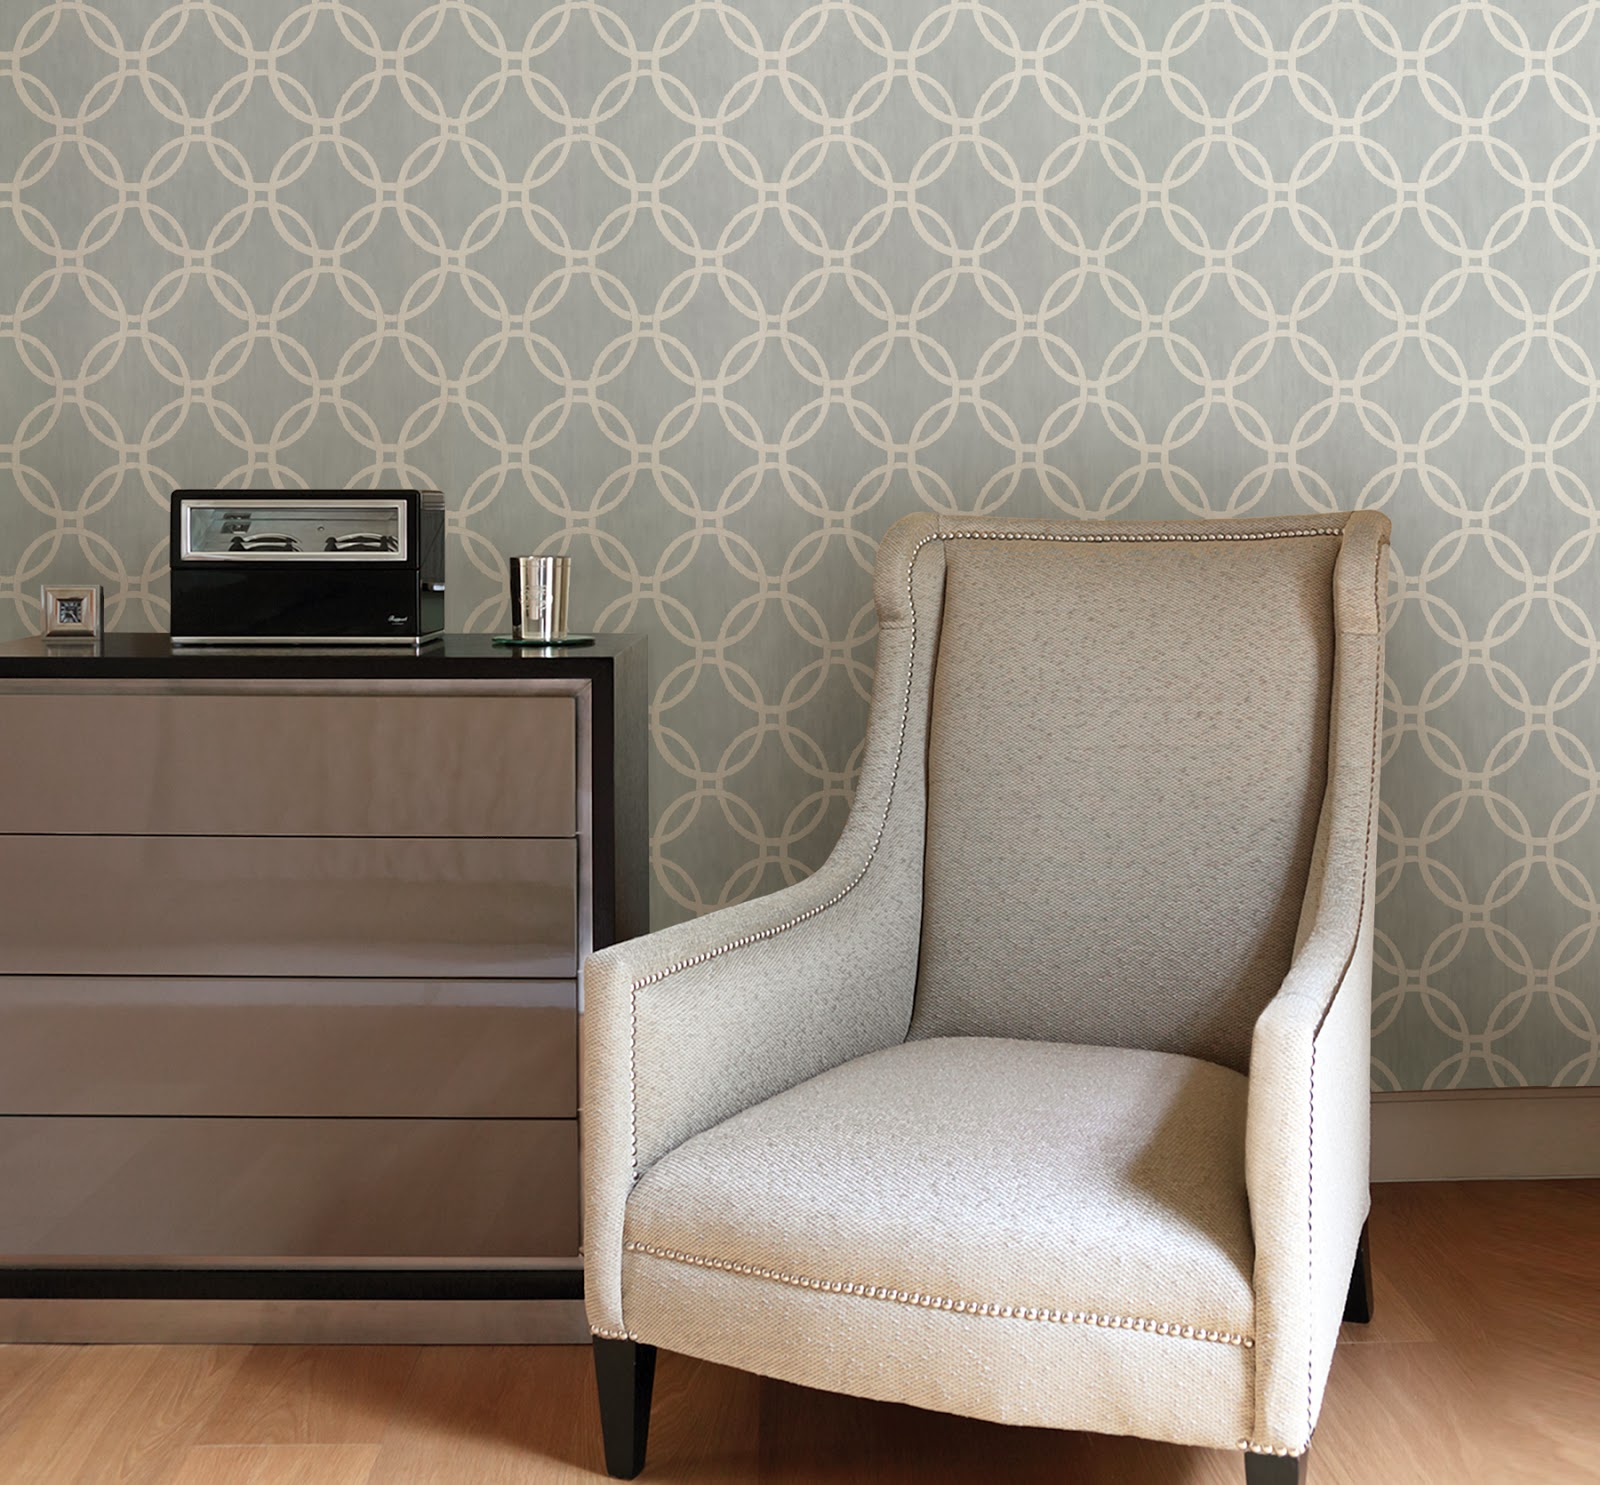 https://www.wallcoveringsforless.com/shoppingcart/prodlist1.CFM?page=_prod_detail.cfm&product_id=43458&startrow=73&search=Simple%20Space%202&pagereturn=_search.cfm